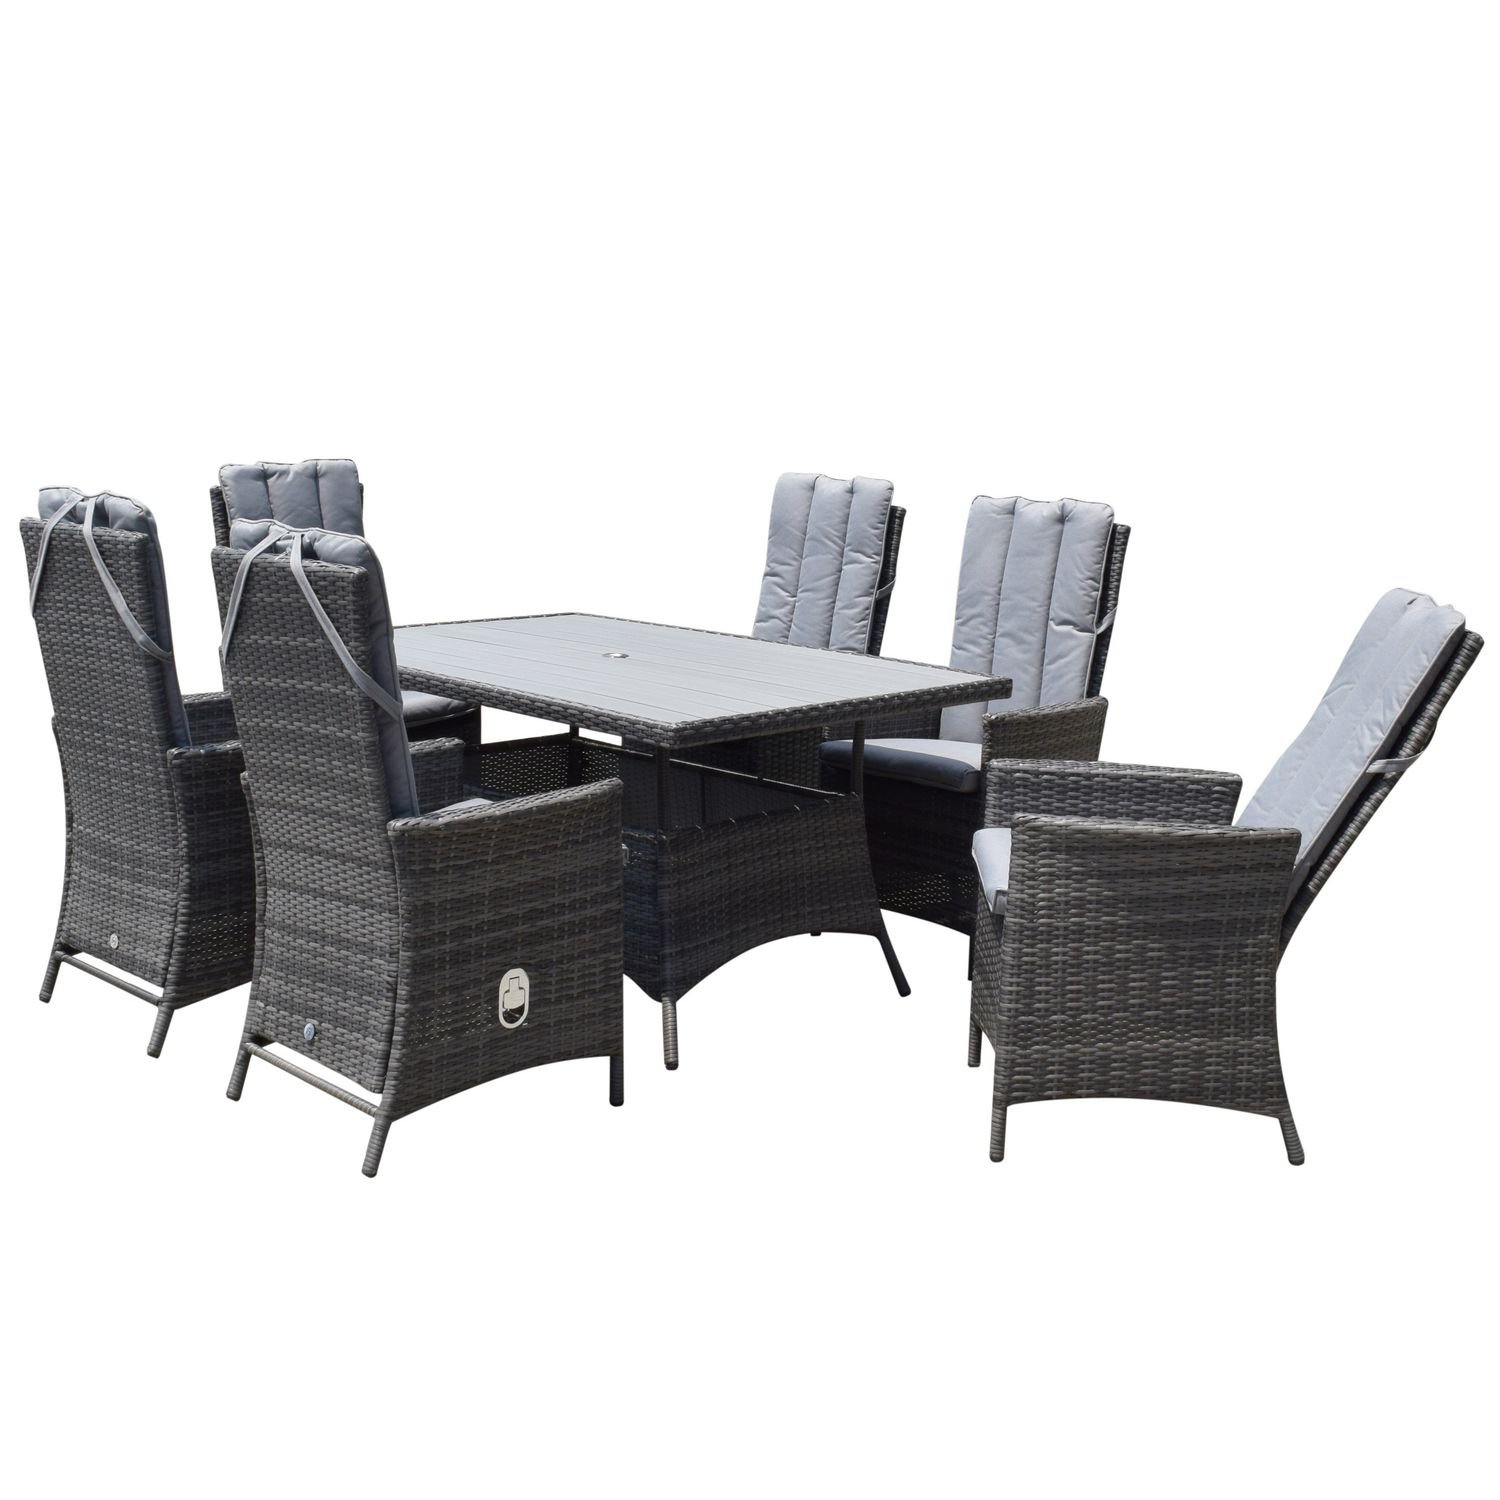 image-Signature Weave Garden Emily Grey 6 Seat Rectangular Reclining Dining Set